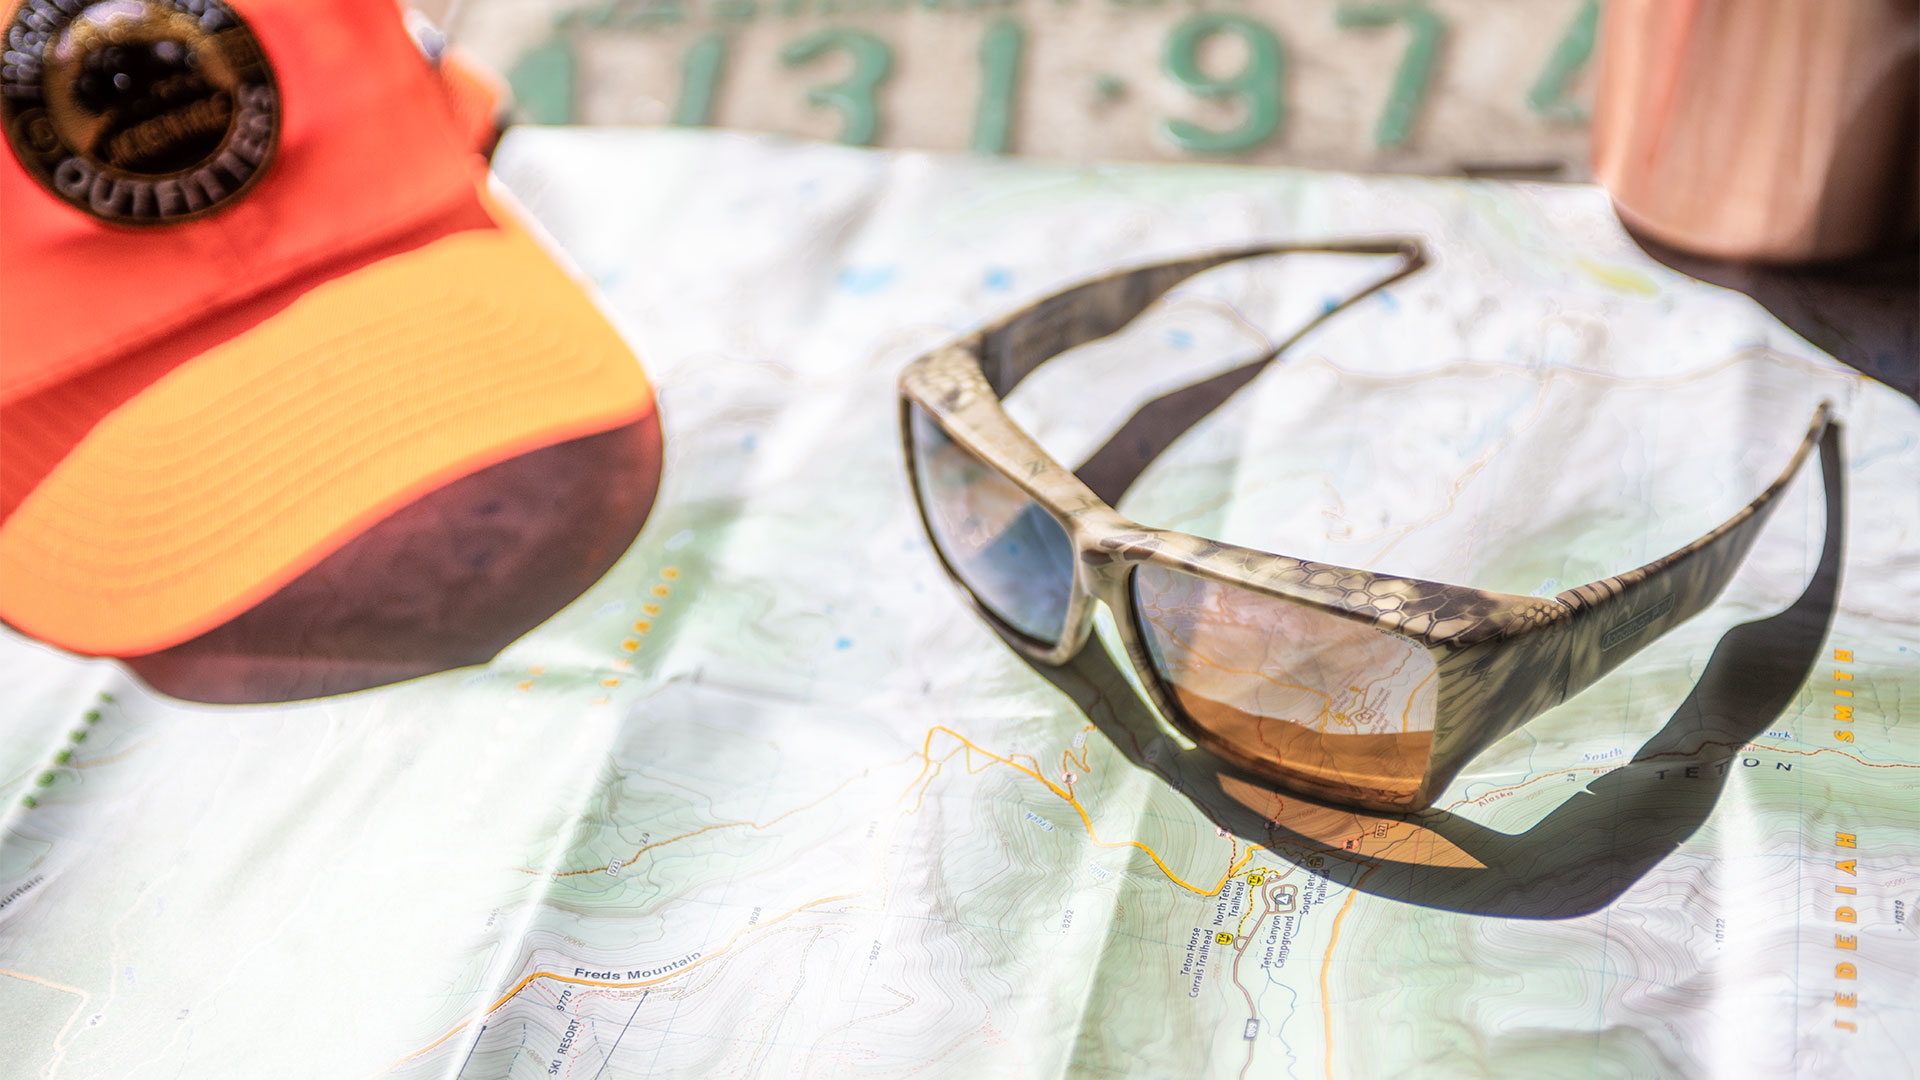 A pair of fit over sunglasses rests on a map